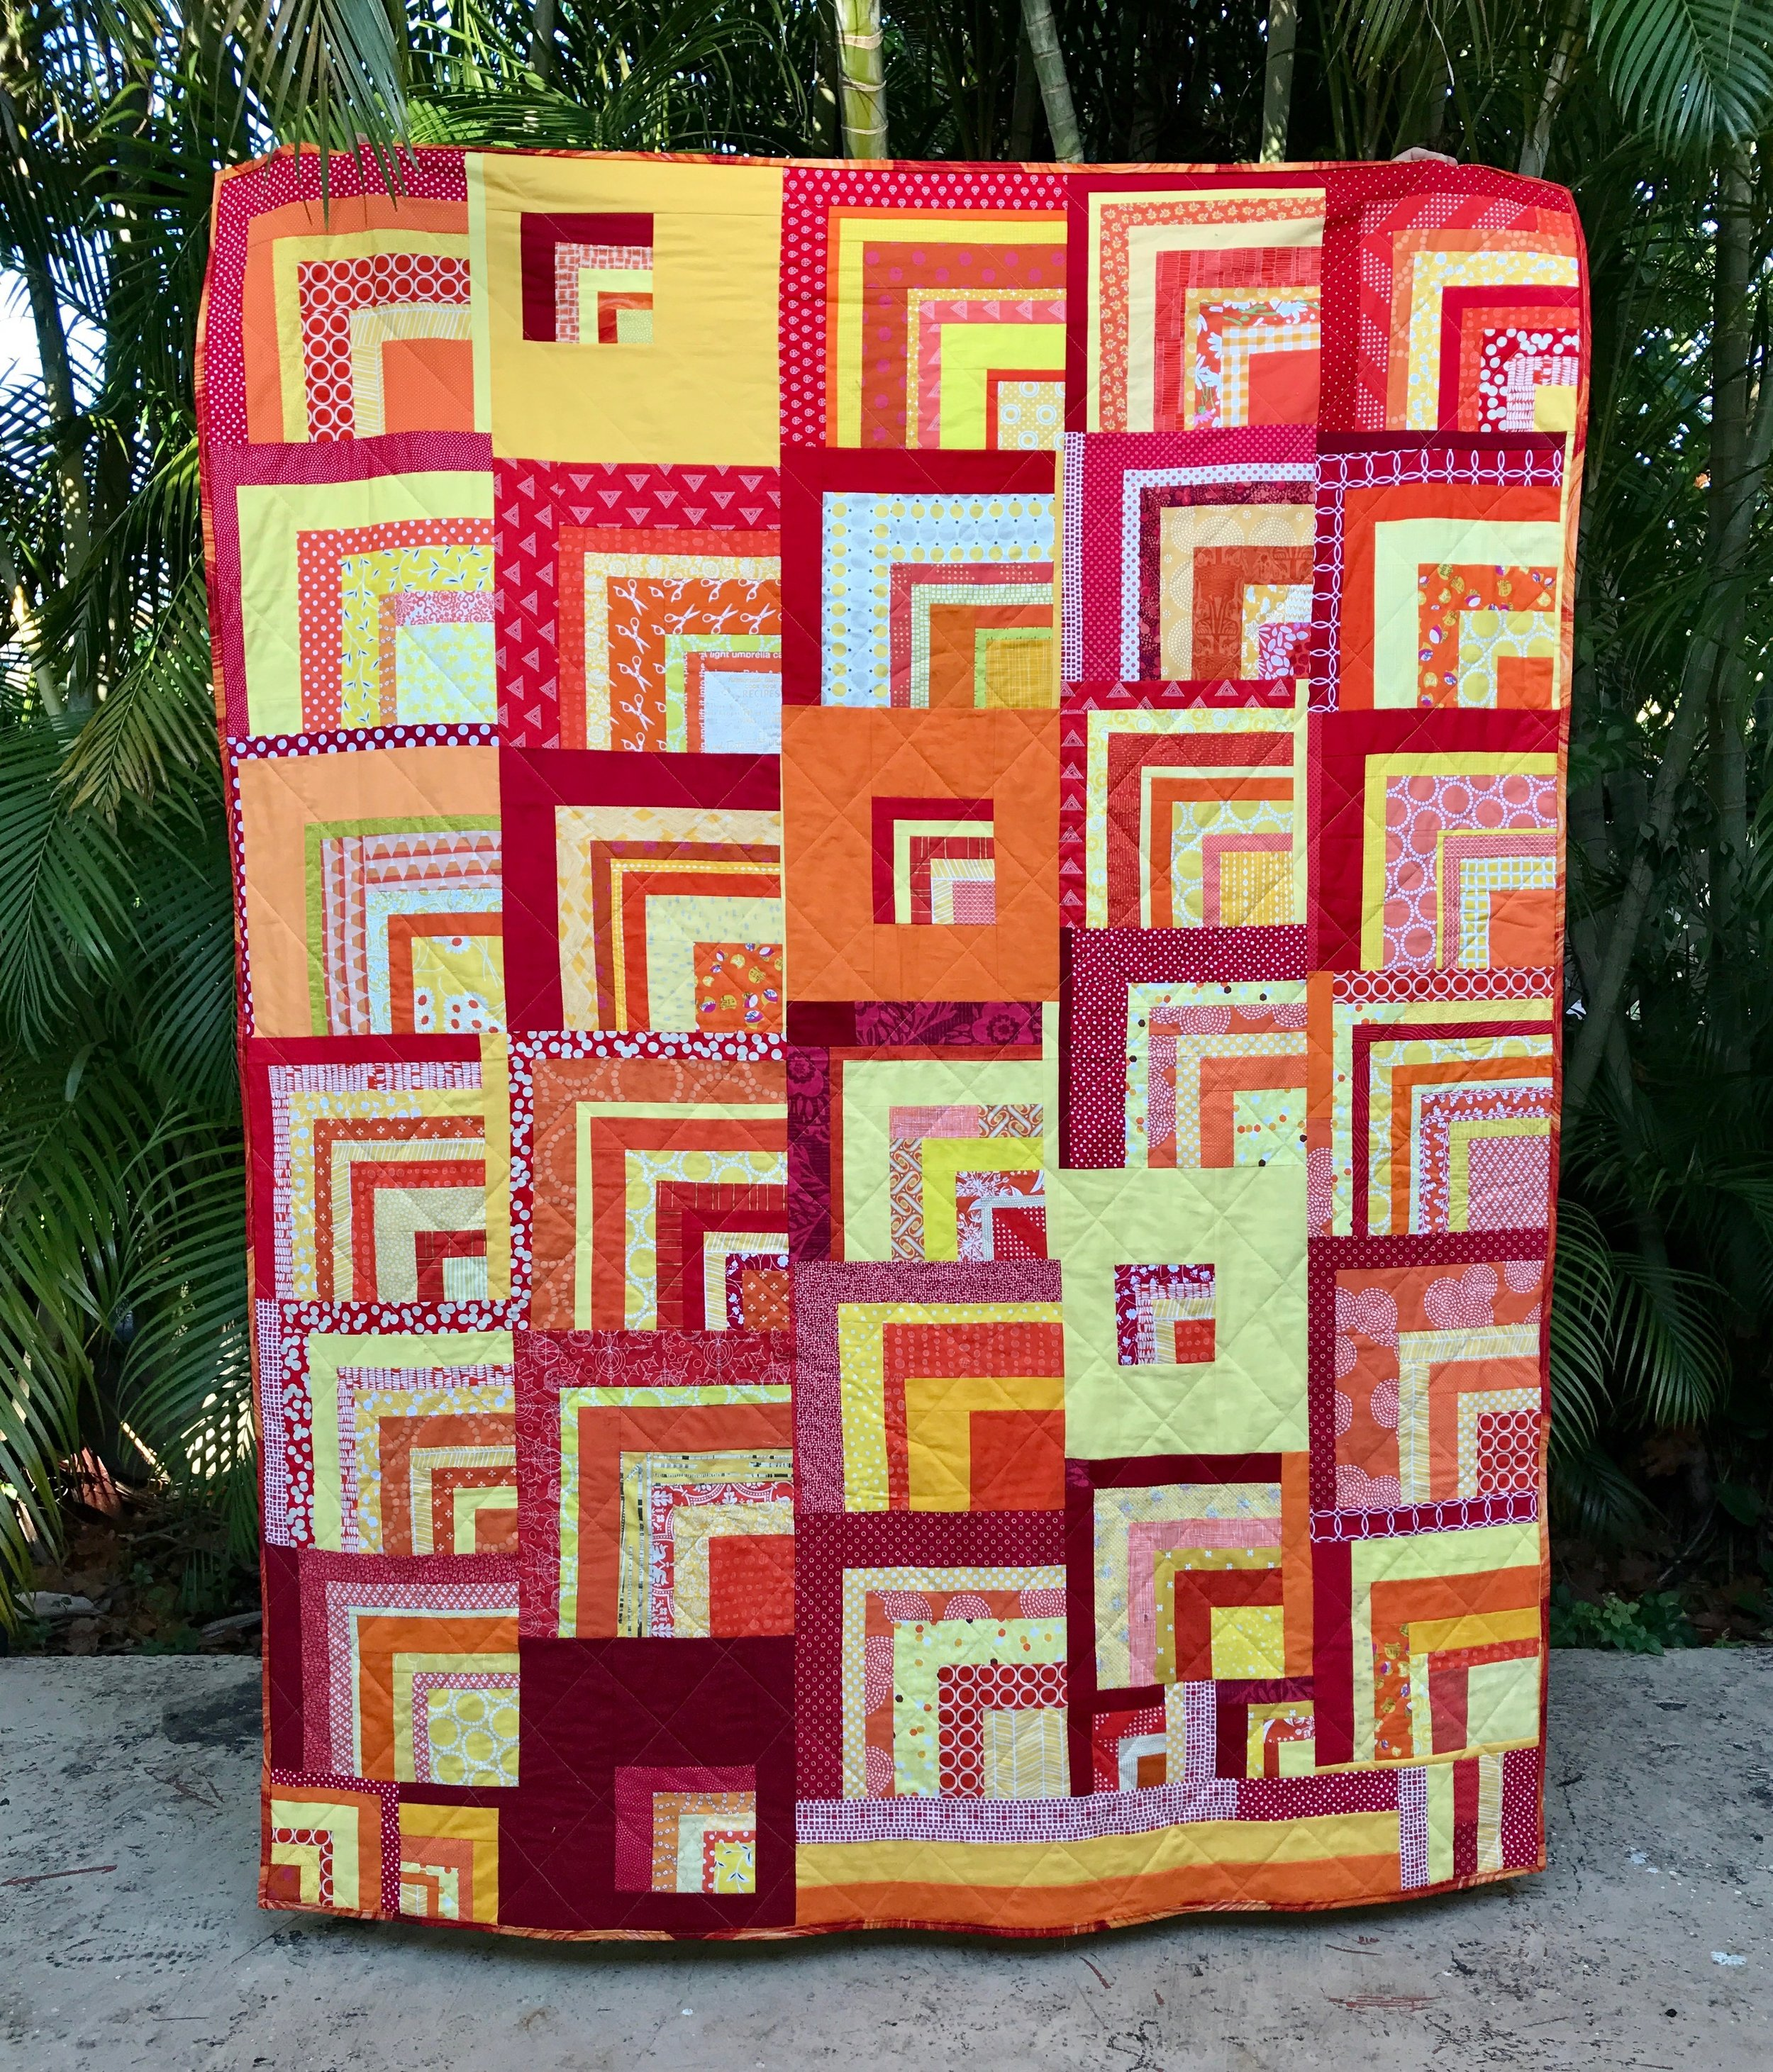 Play in the Sunshine - A quilt by Love Circle of DO. good stitches.